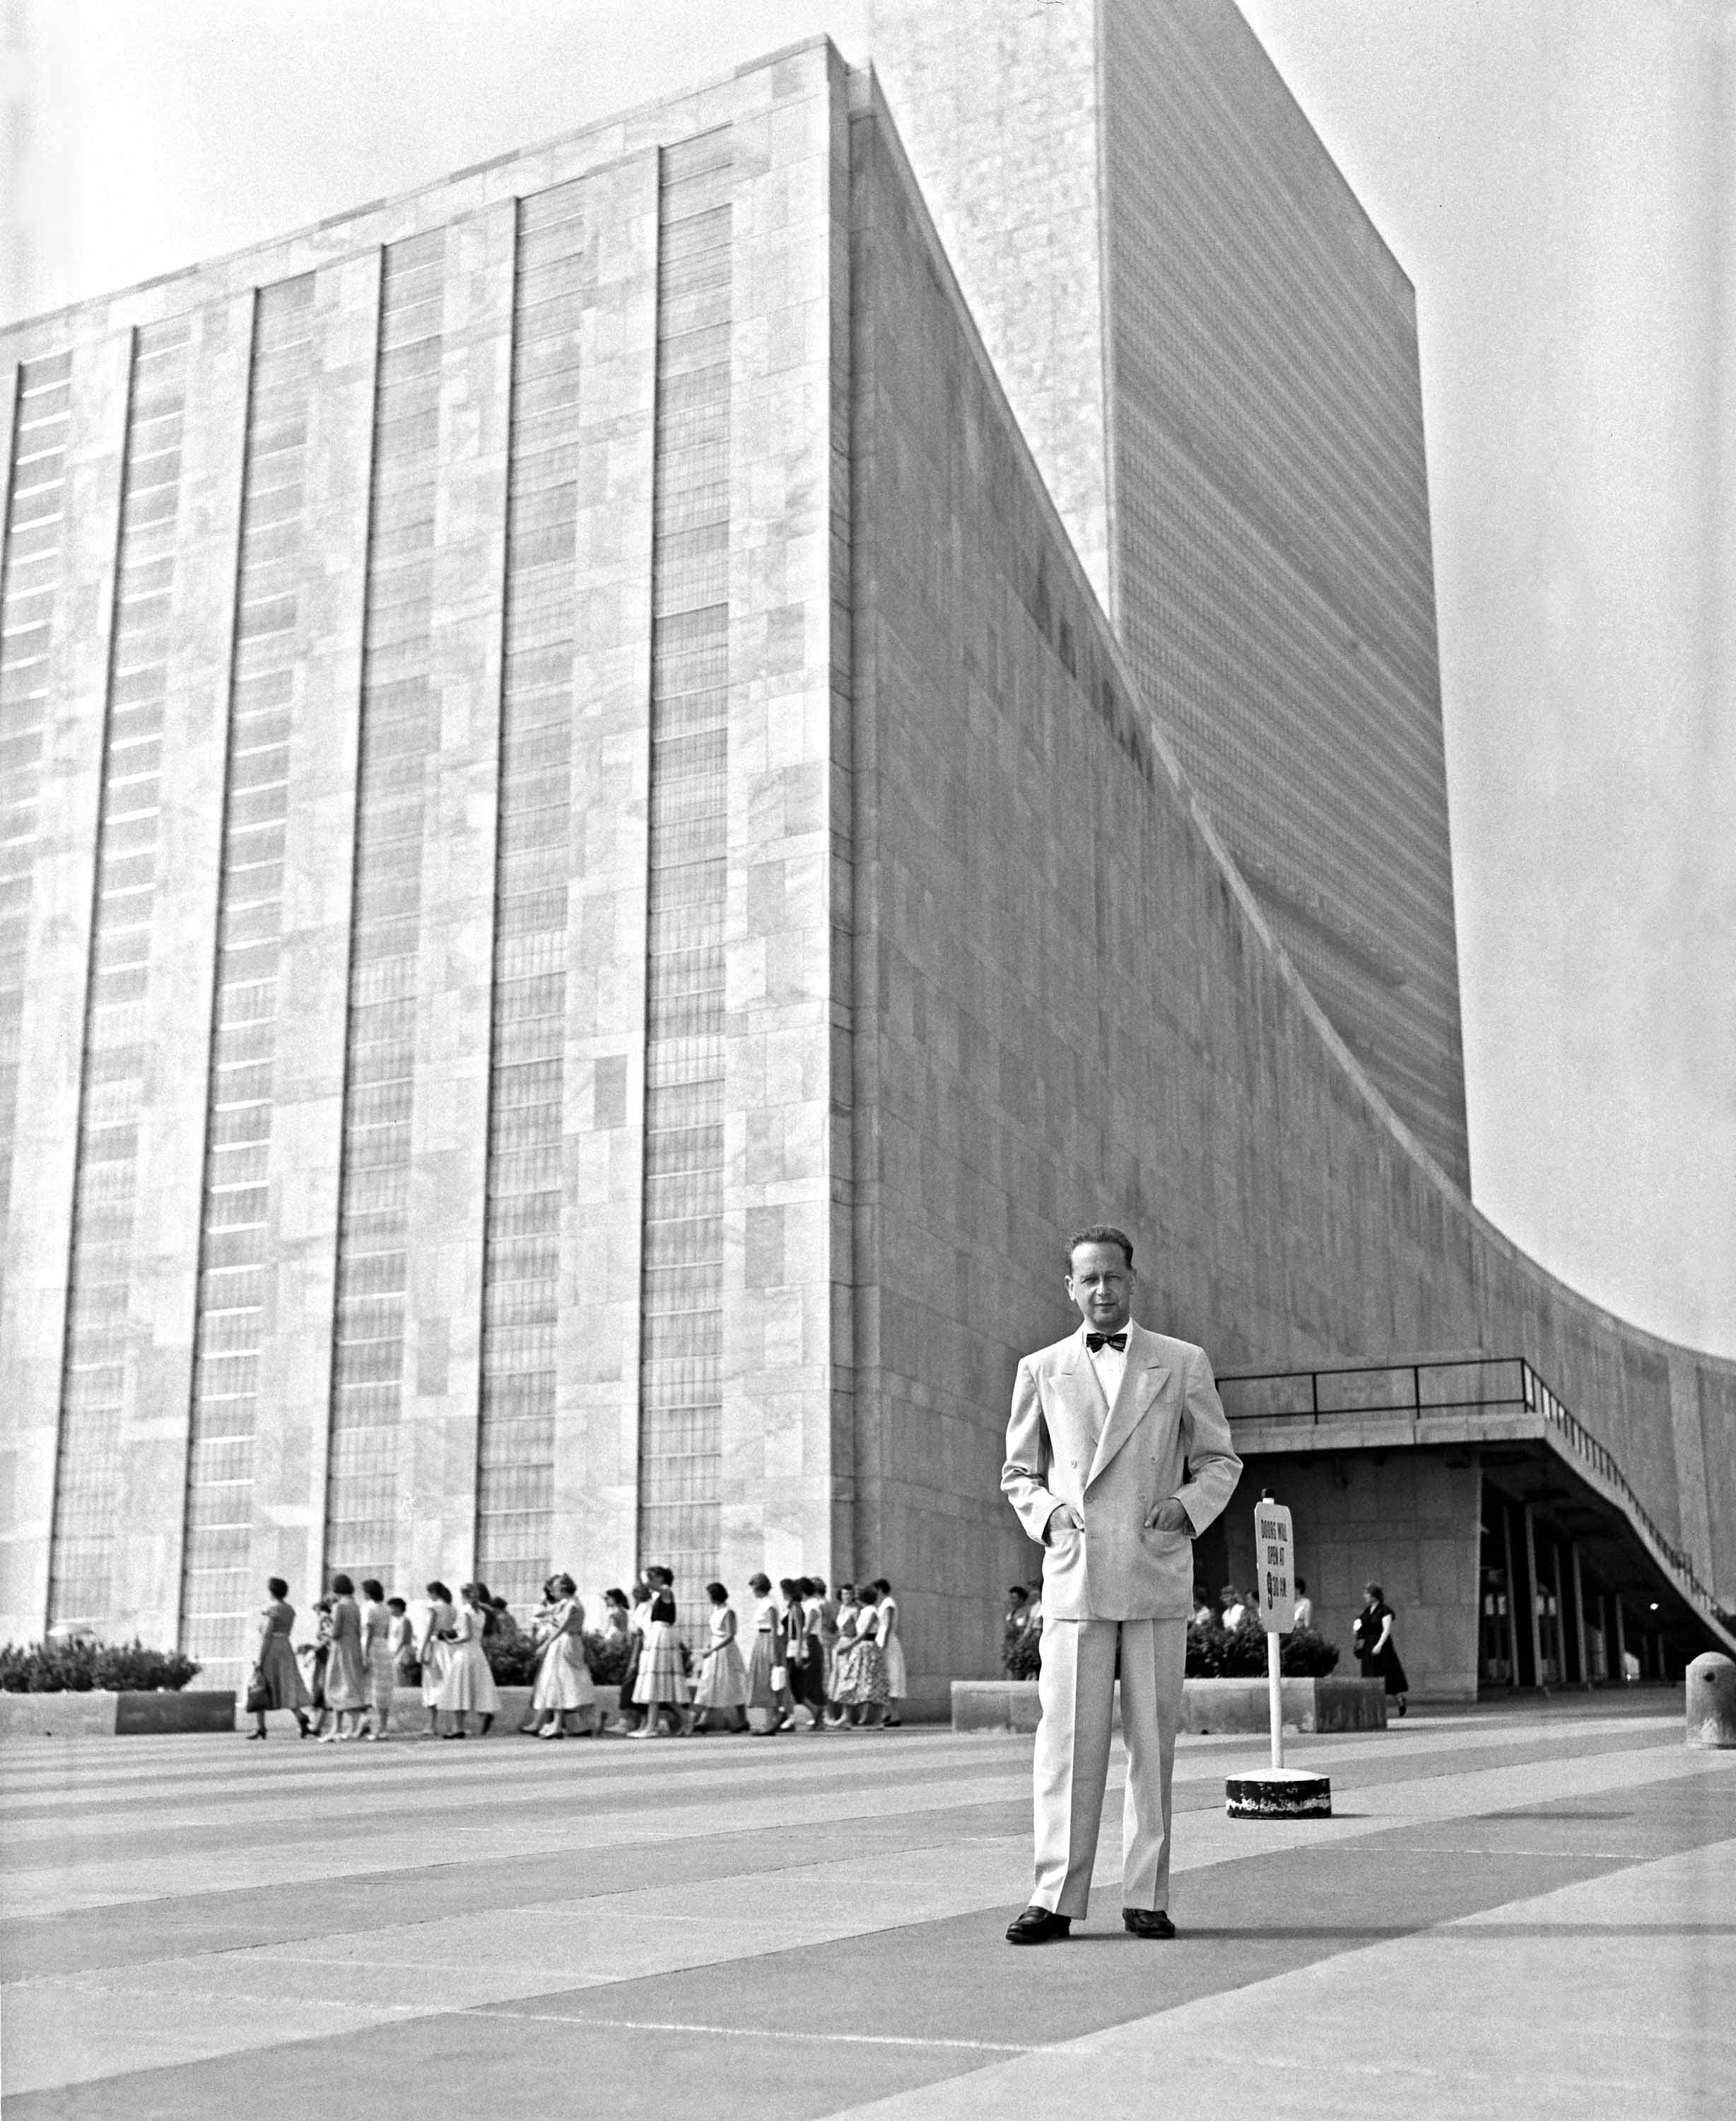 Dag Hammarskjold at the United Nations - UN Day 2017